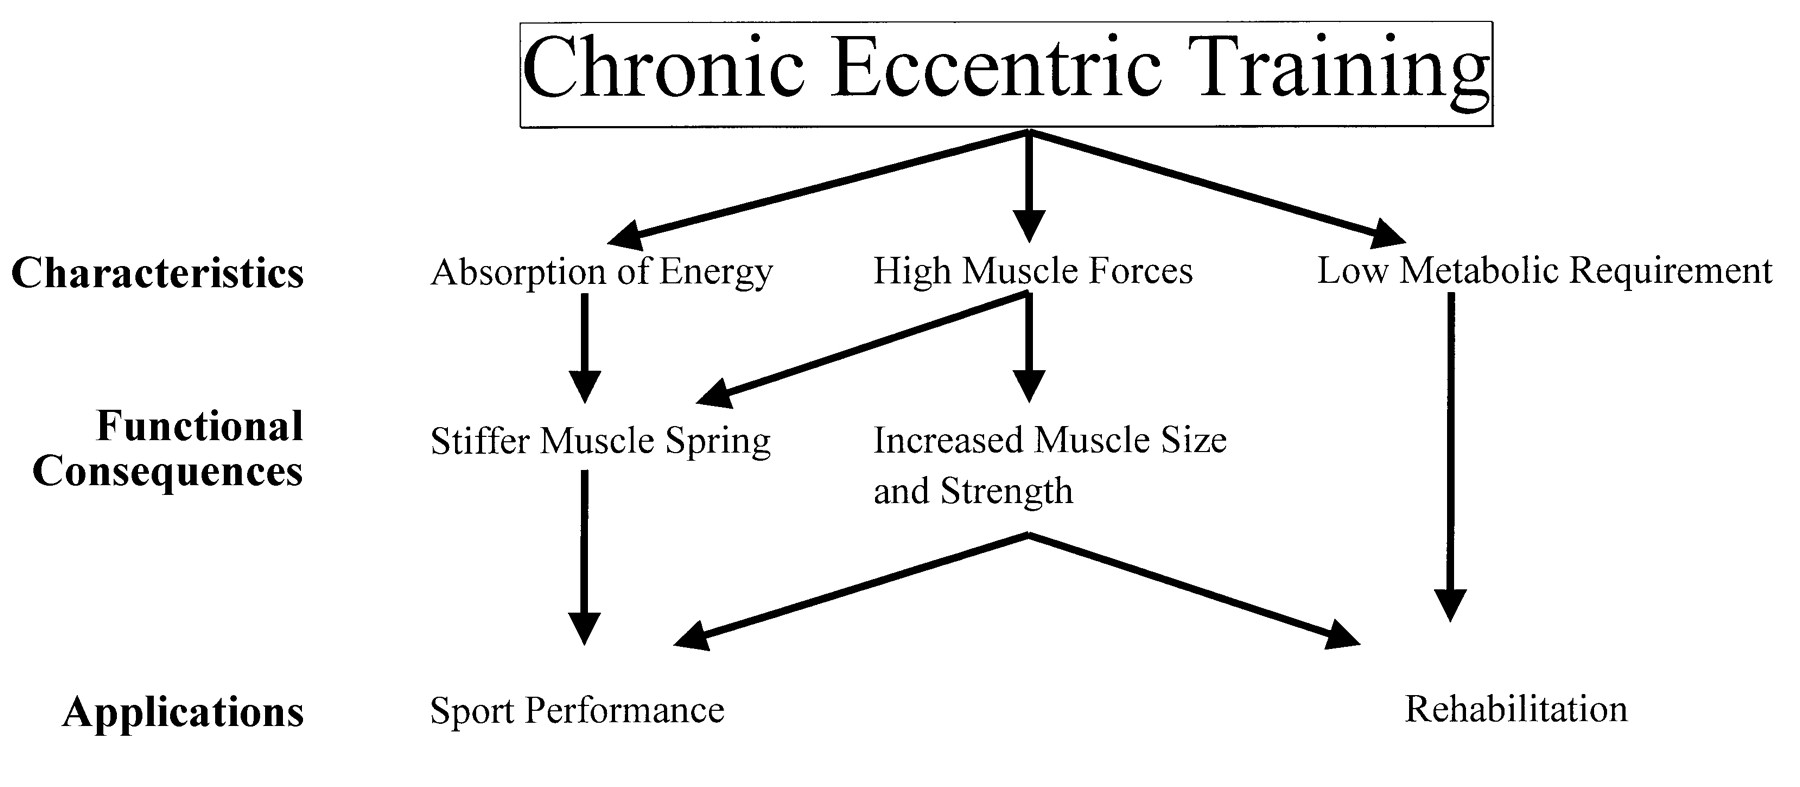 Eccentric muscle contractions, downhill running, and DOMS